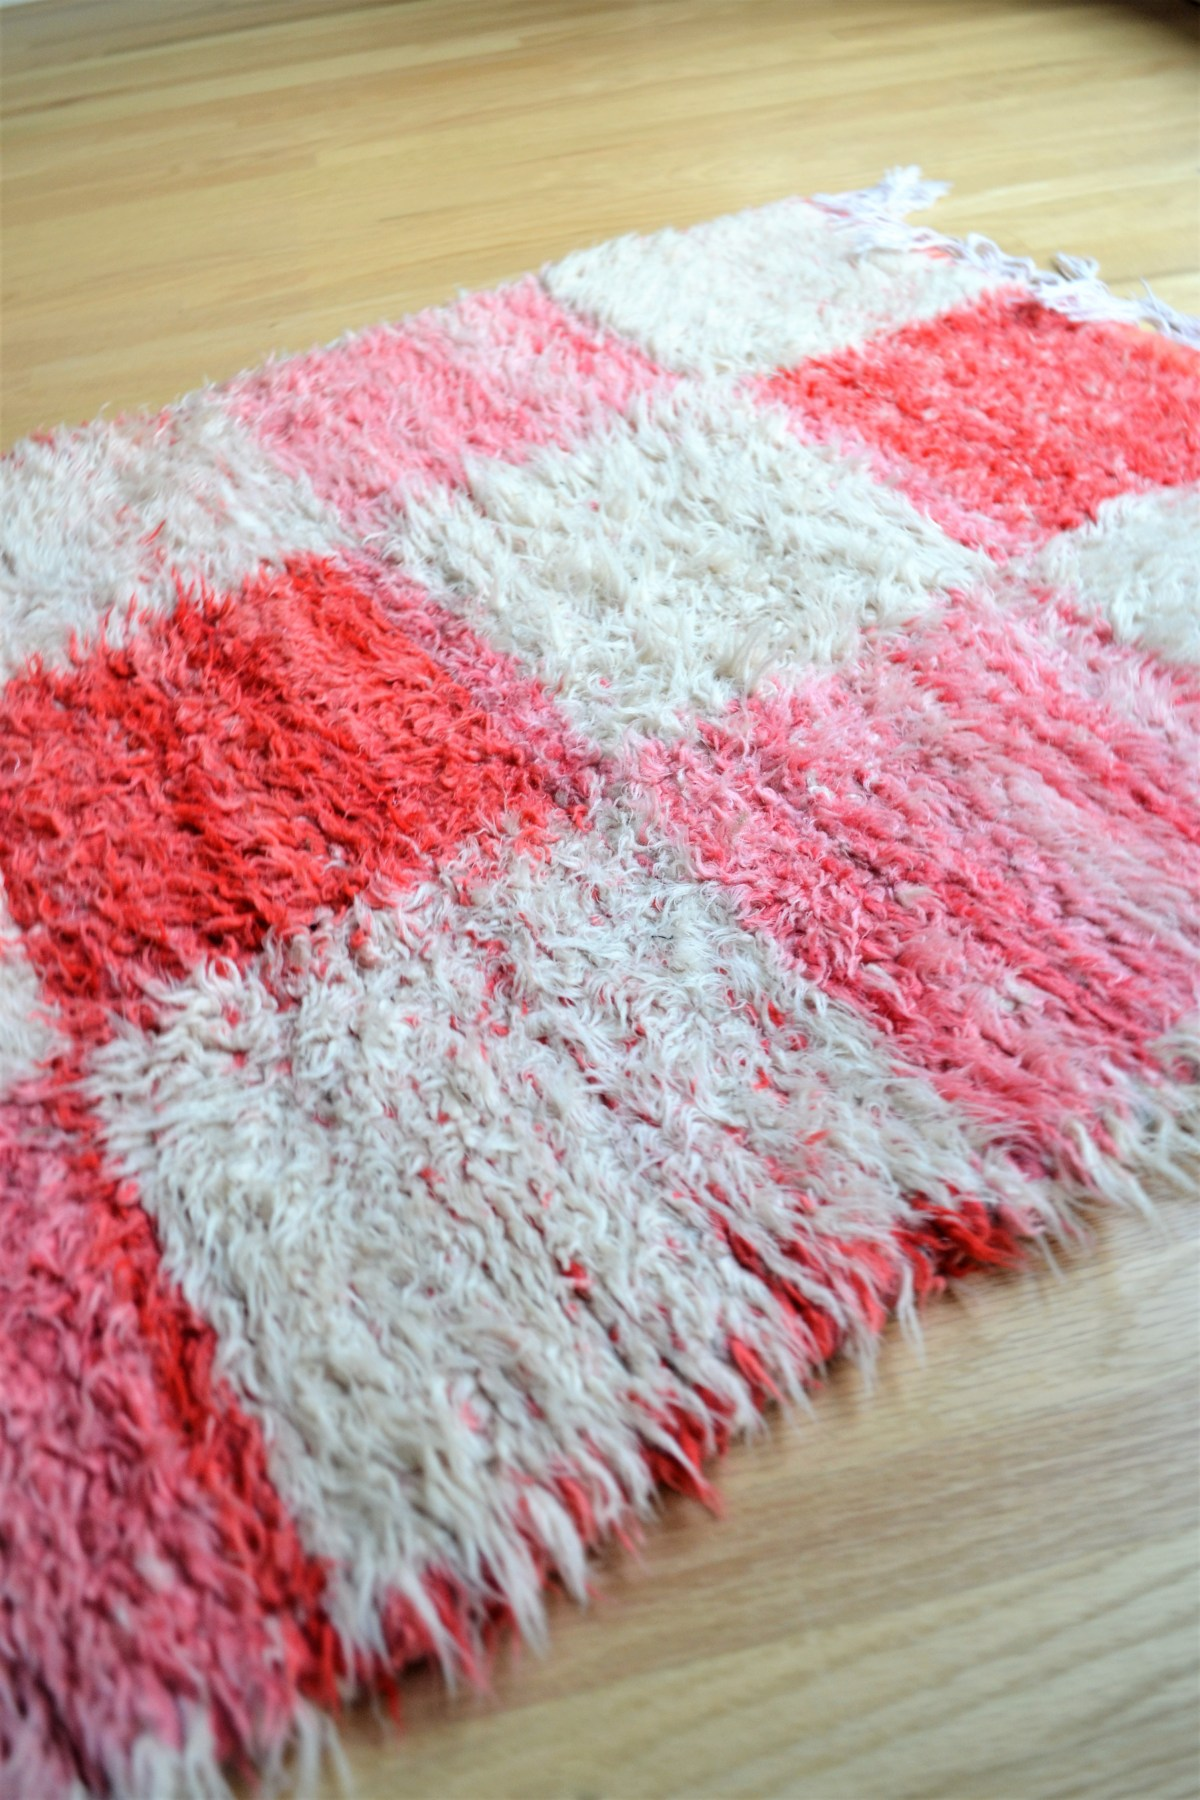 Floor Loom Rug Weaving Inspiration! - red and white